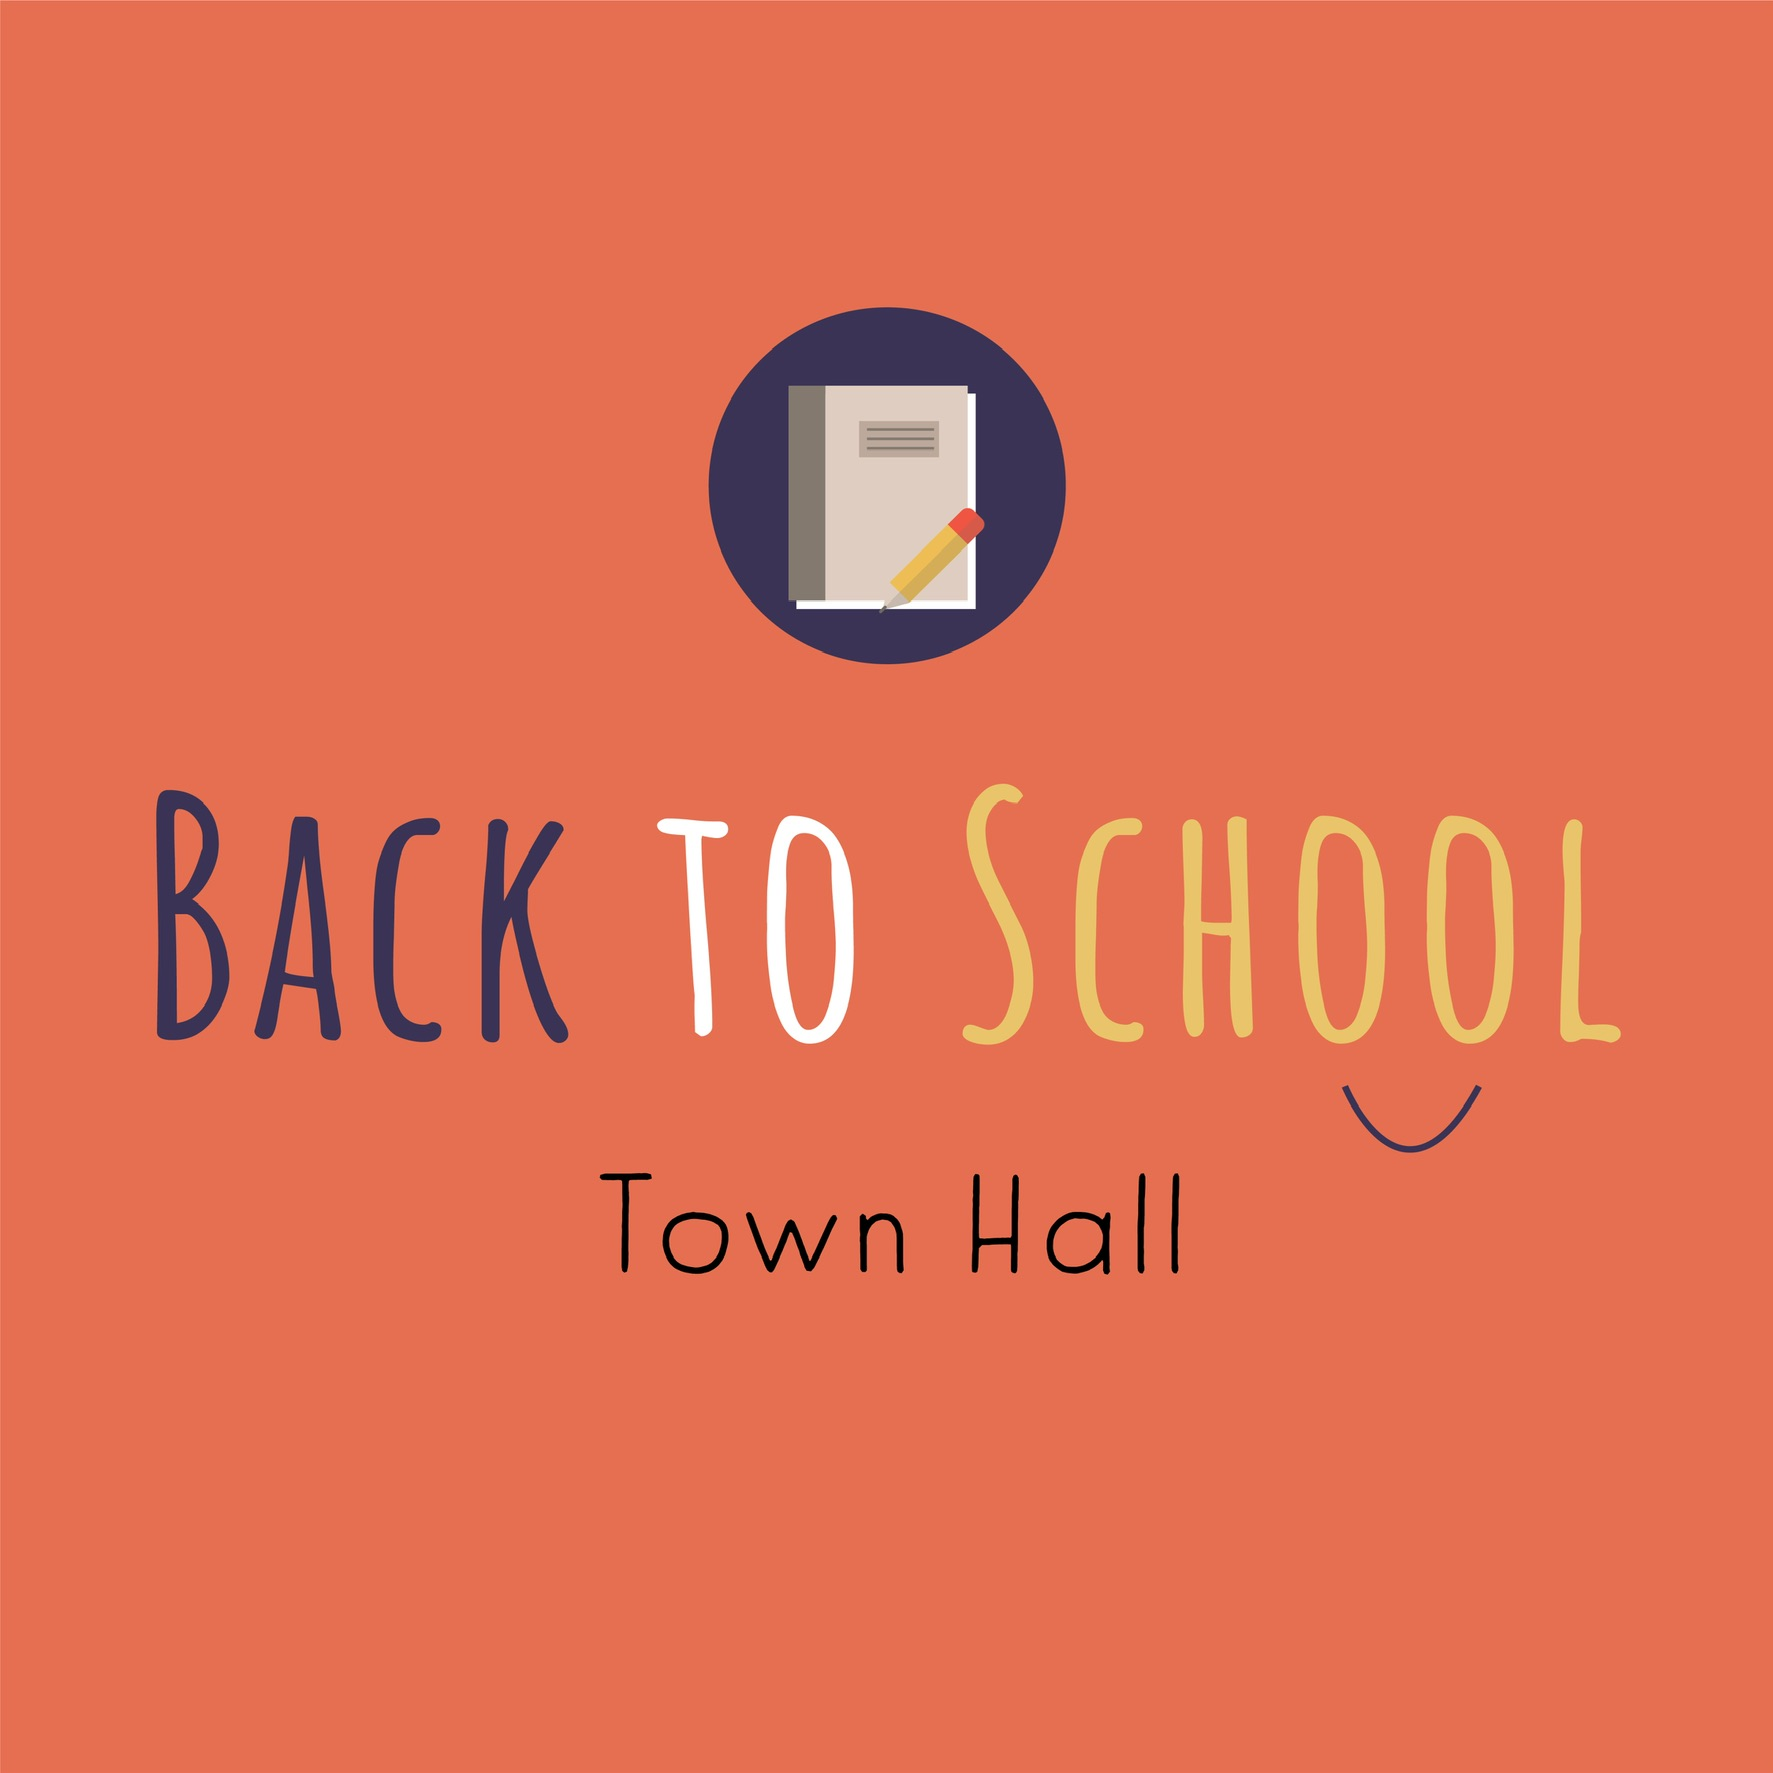 Back to School Town Hall 2021 Event